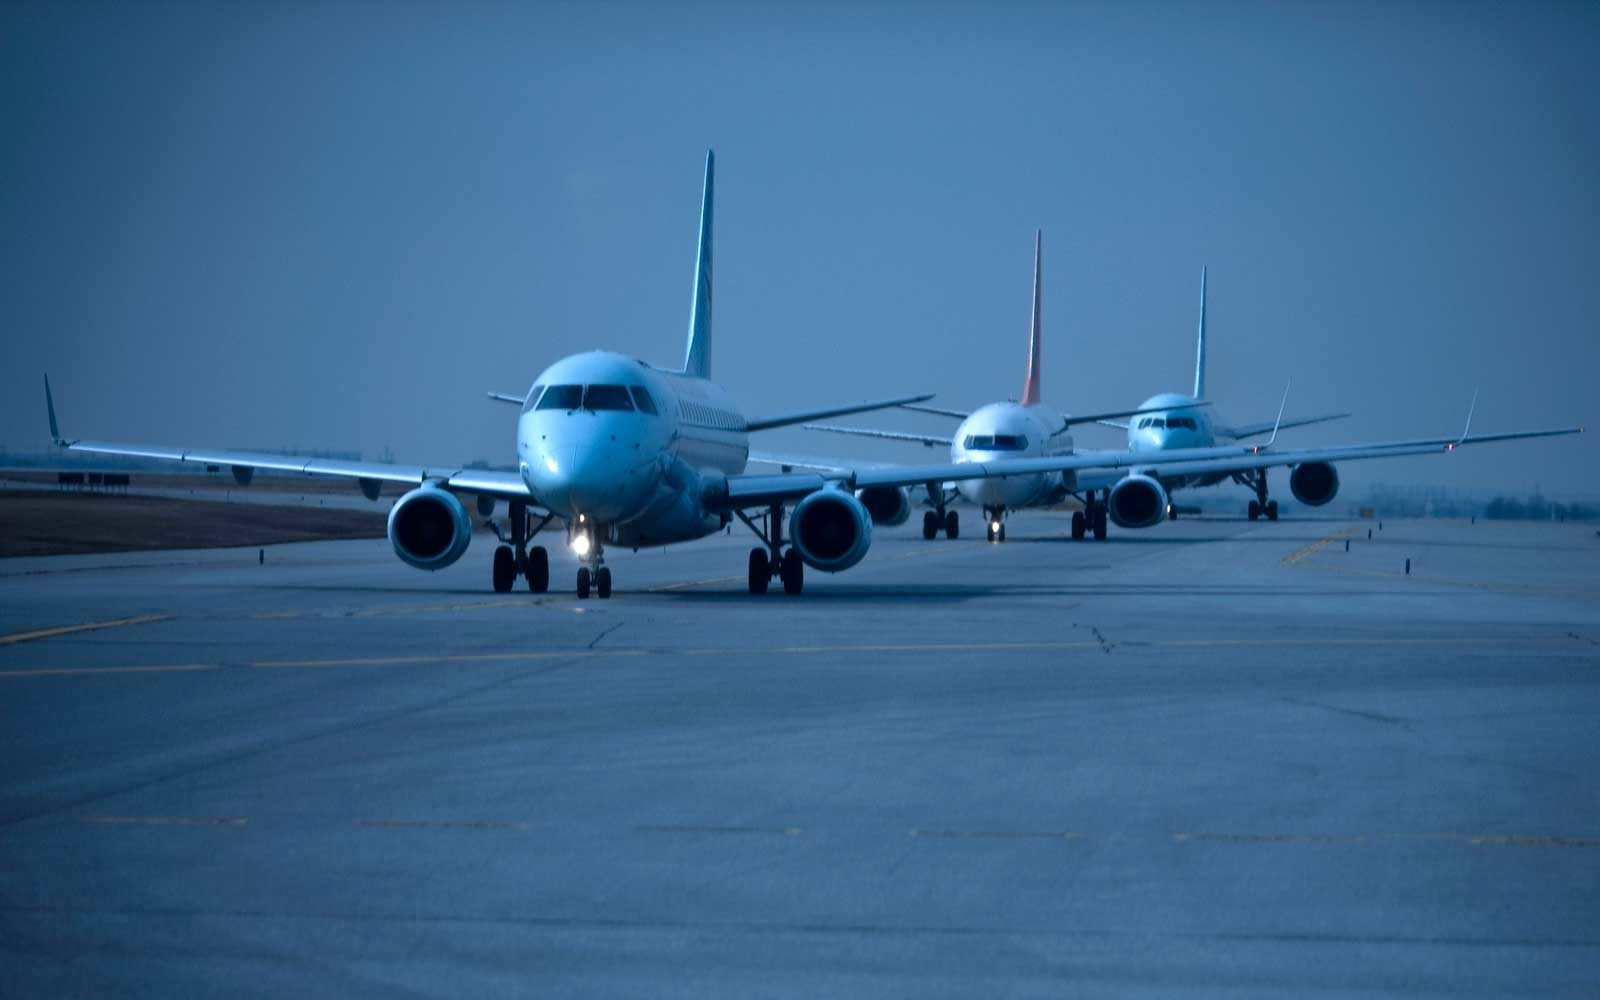 Airplanes waiting for take-off